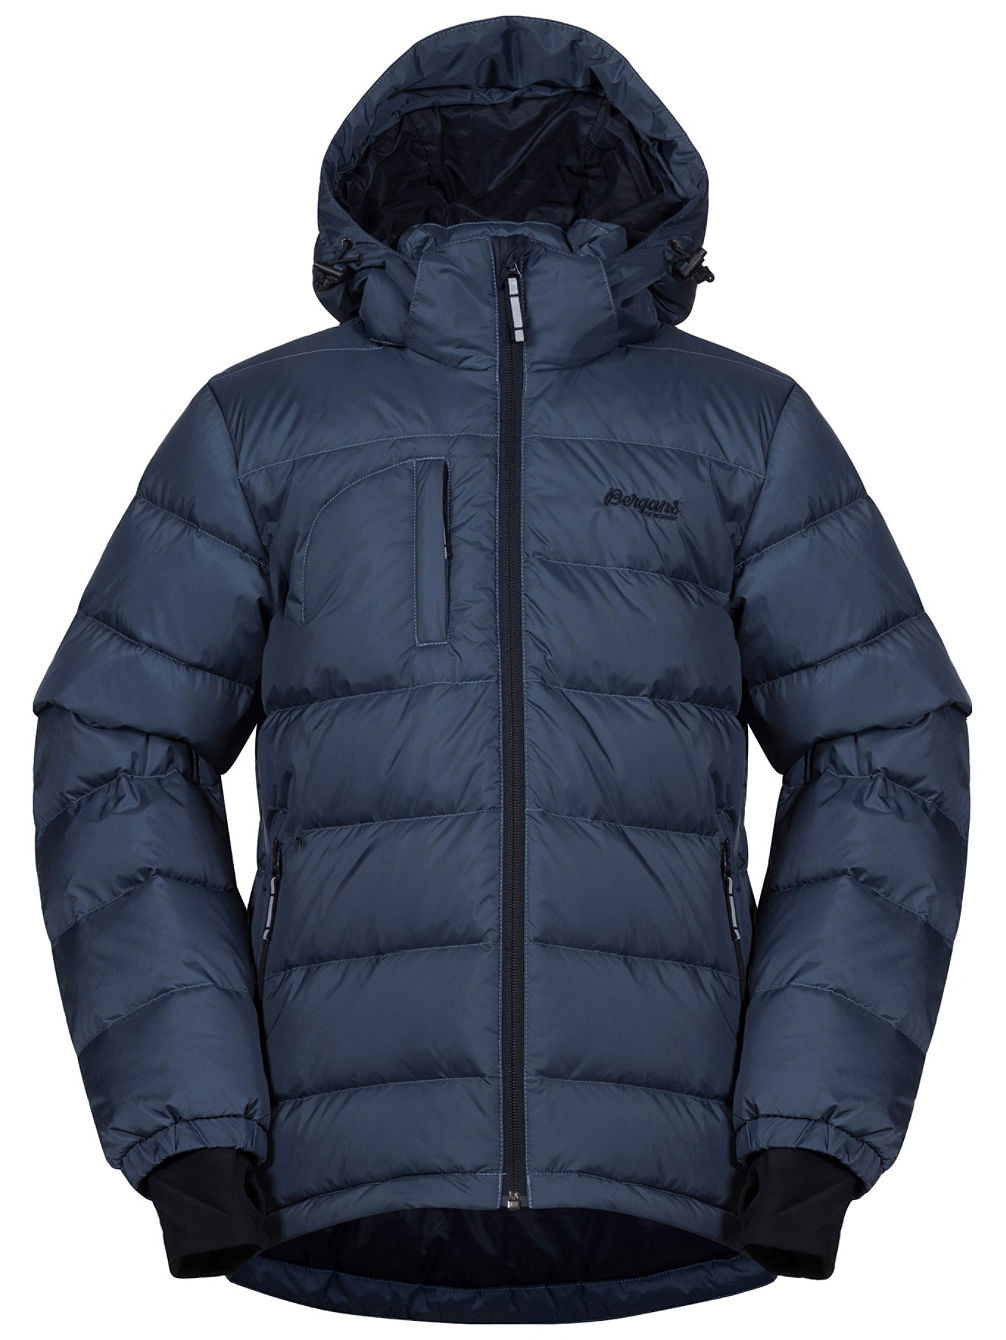 c8fb820a Buy Bergans Down Jacket online at Blue Tomato